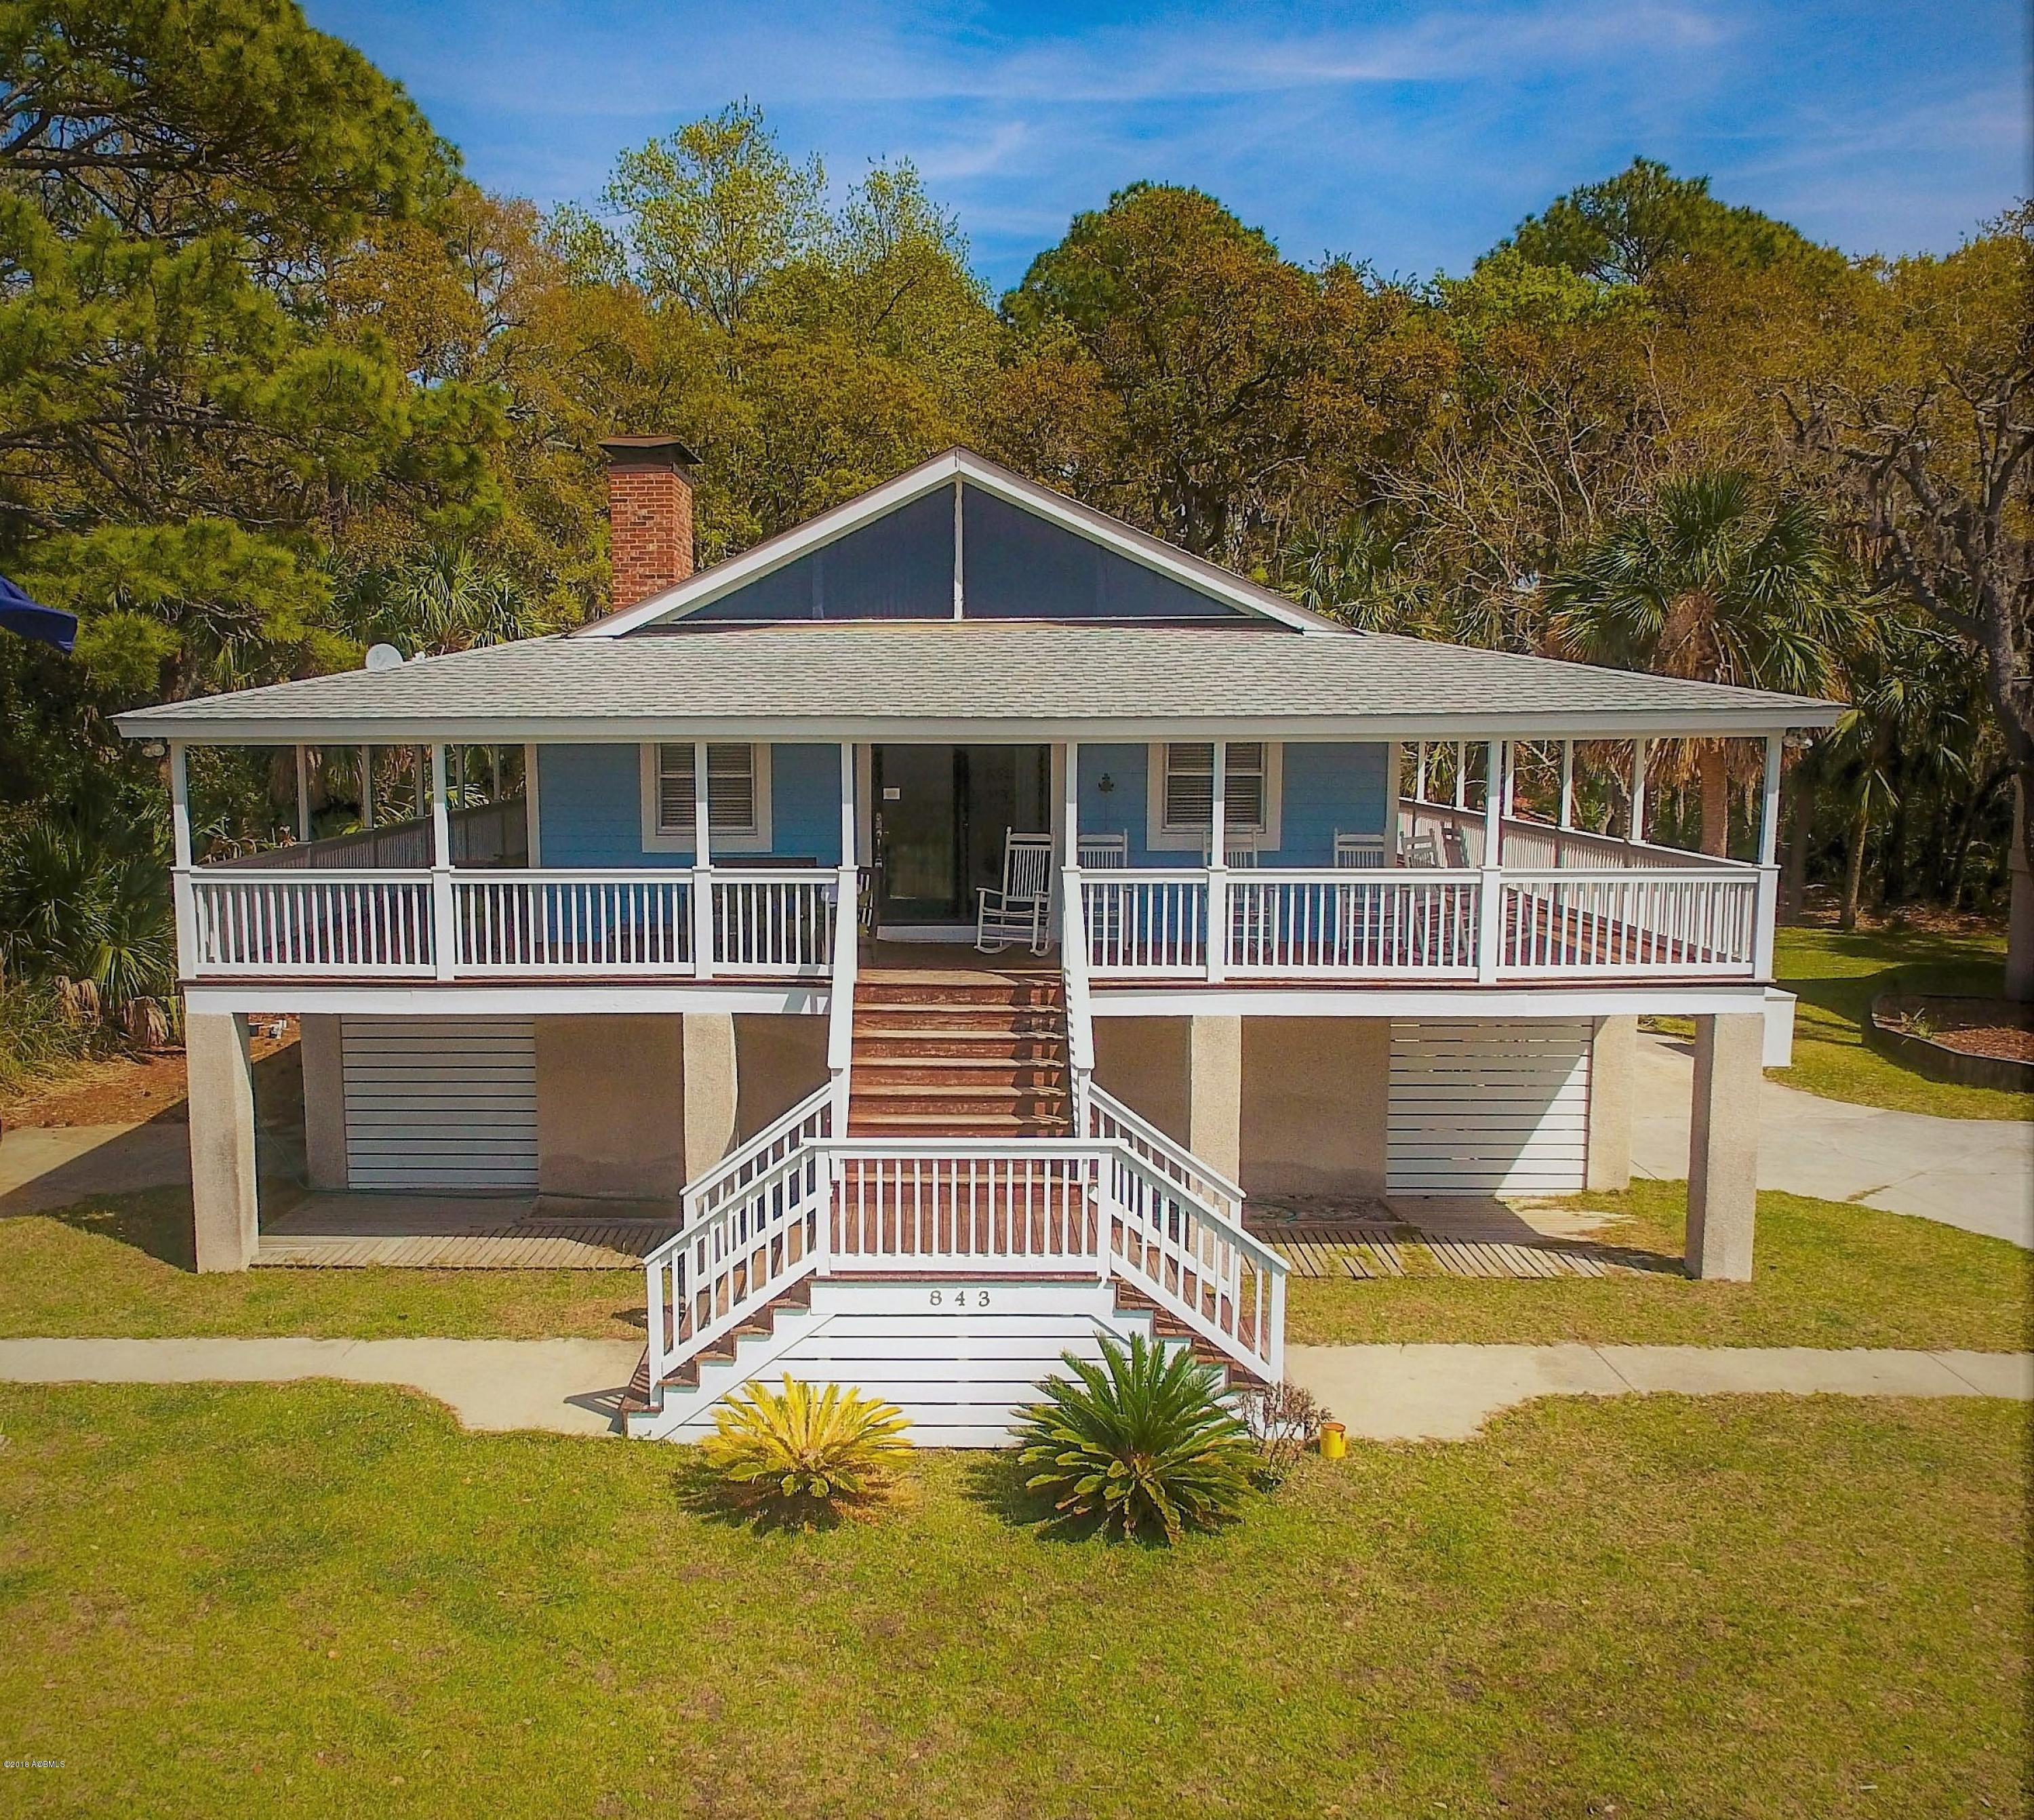 Photo of 843 Bonito Drive, Fripp Island, SC 29920